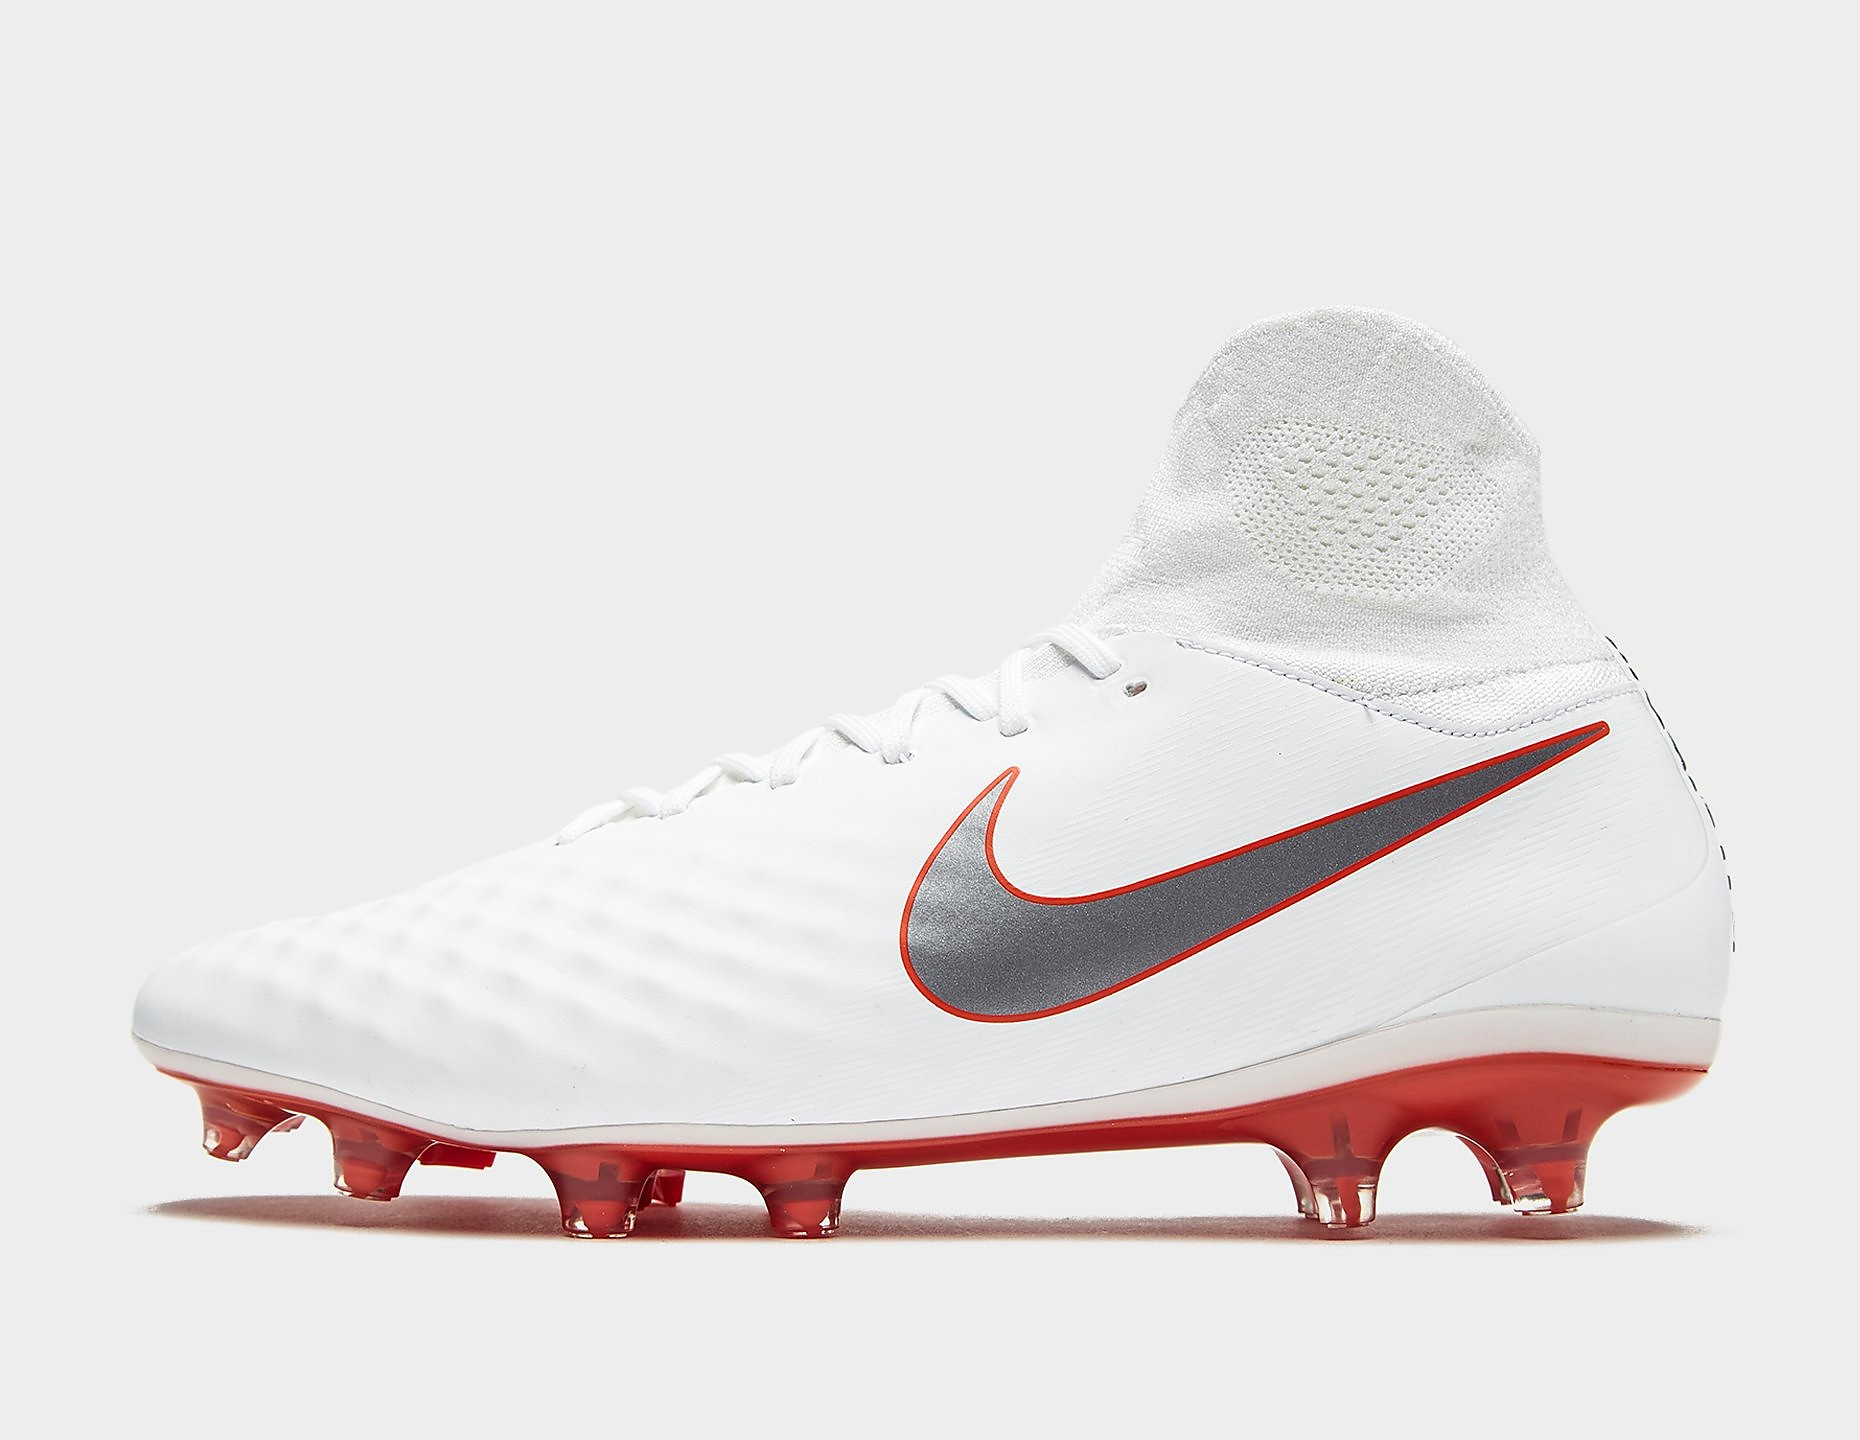 Nike Just Do It Magista Pro Dynamic Fit FG